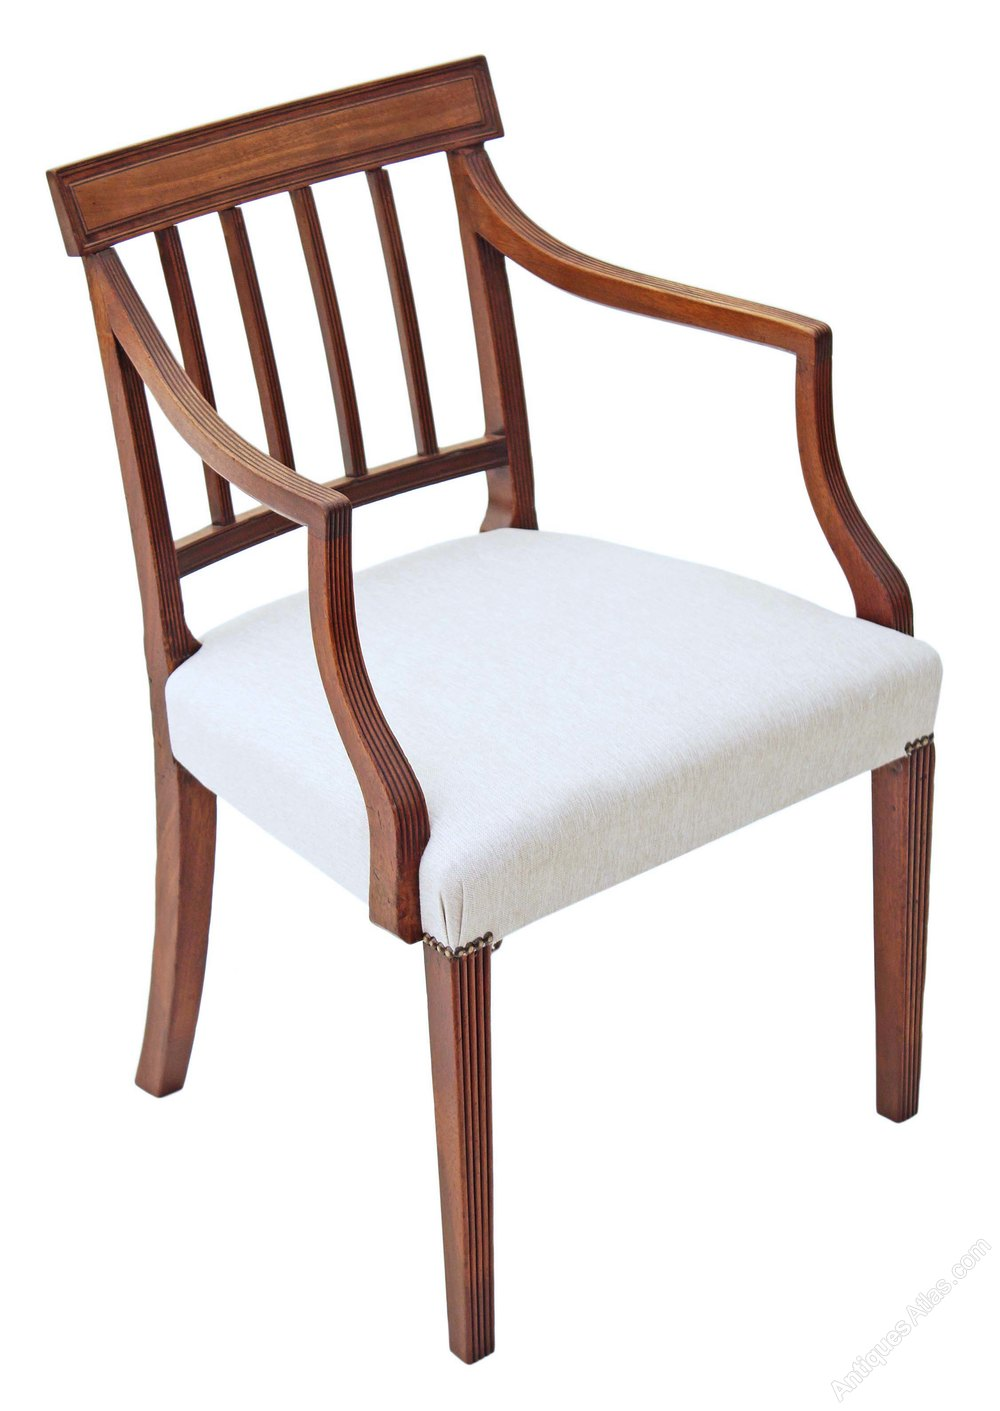 Set Of 8 6 2 Mahogany Georgian Dining Chairs  : Setof862mahoganyGeorgiaas462a1264z 4 from www.antiques-atlas.com size 1000 x 1411 jpeg 112kB